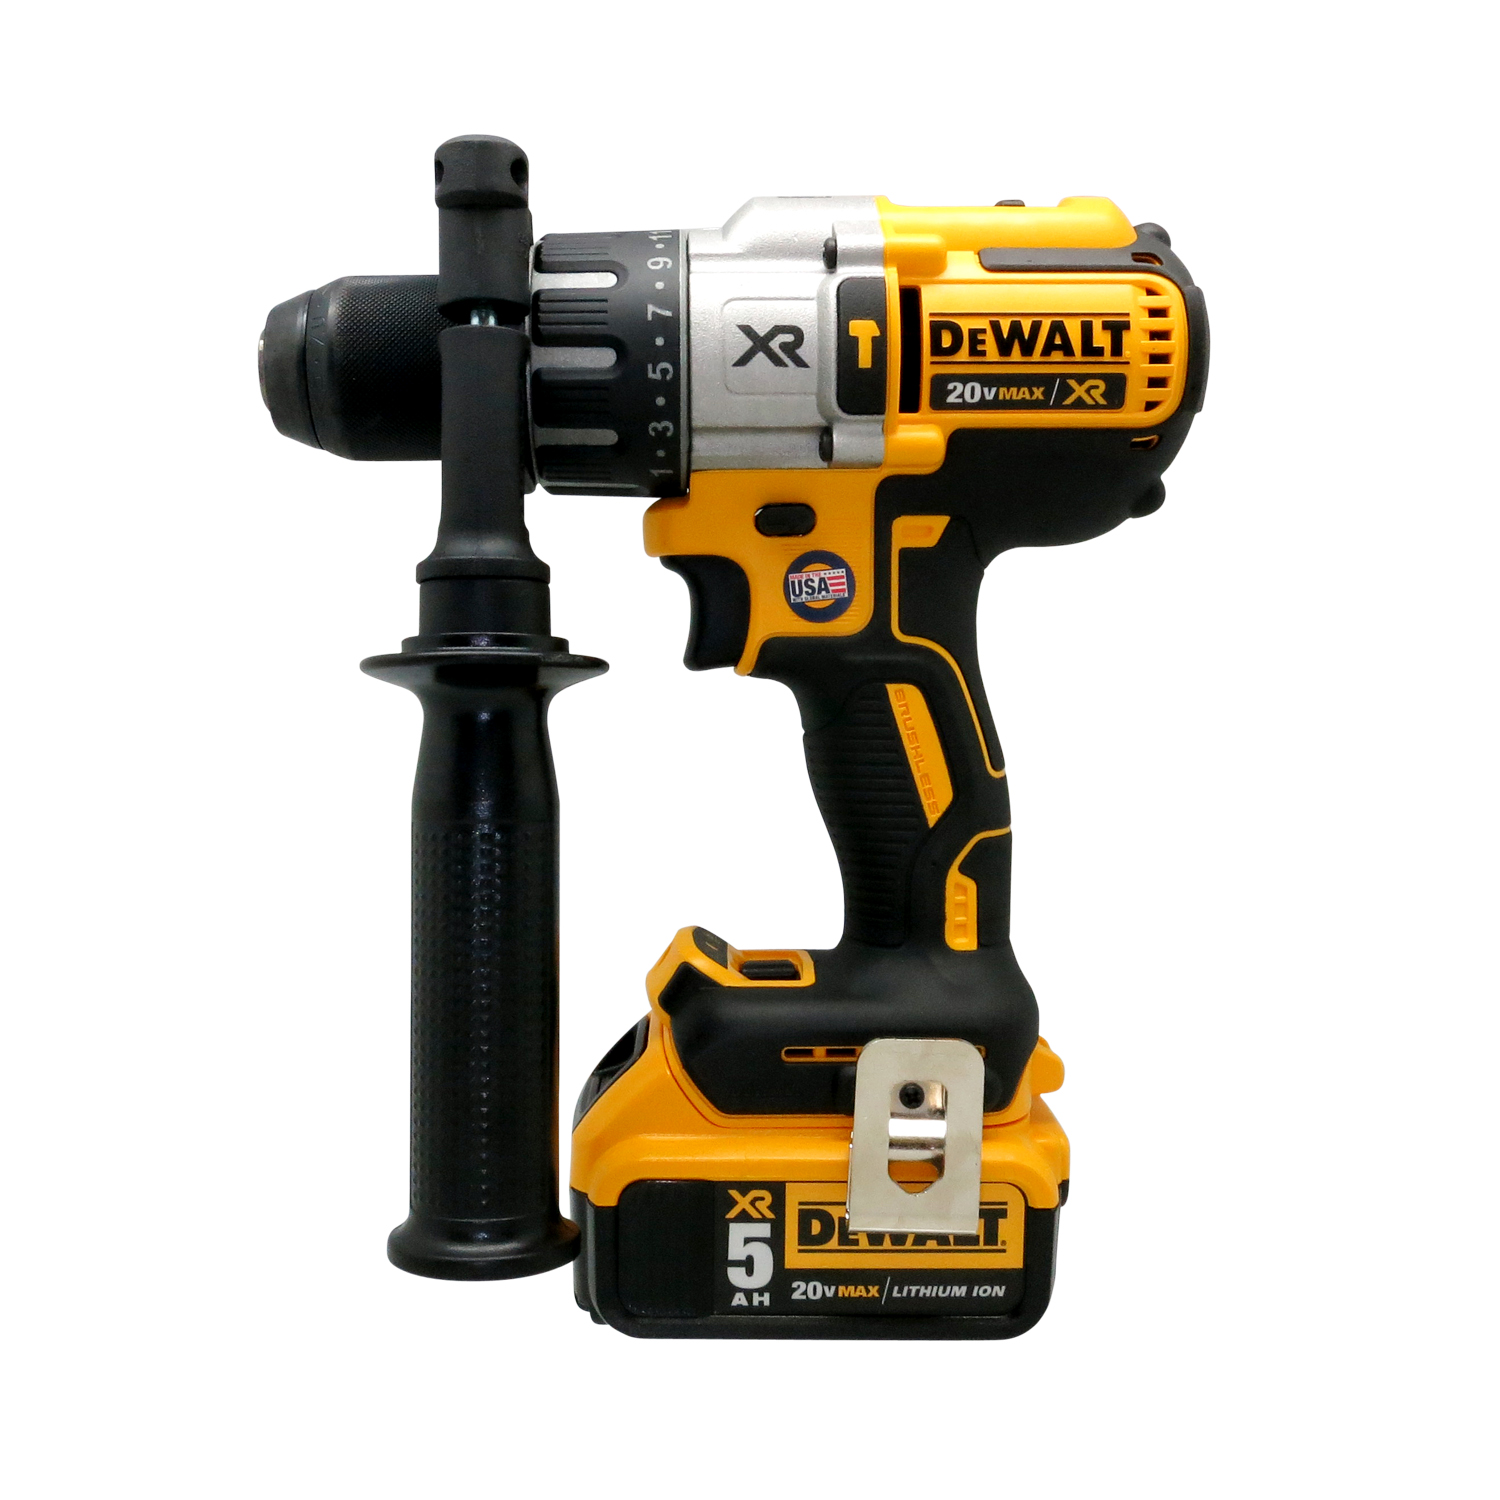 Dewalt dck299p2 20v 20 volt lithium ion brushless for Dewalt 20v brushless motor